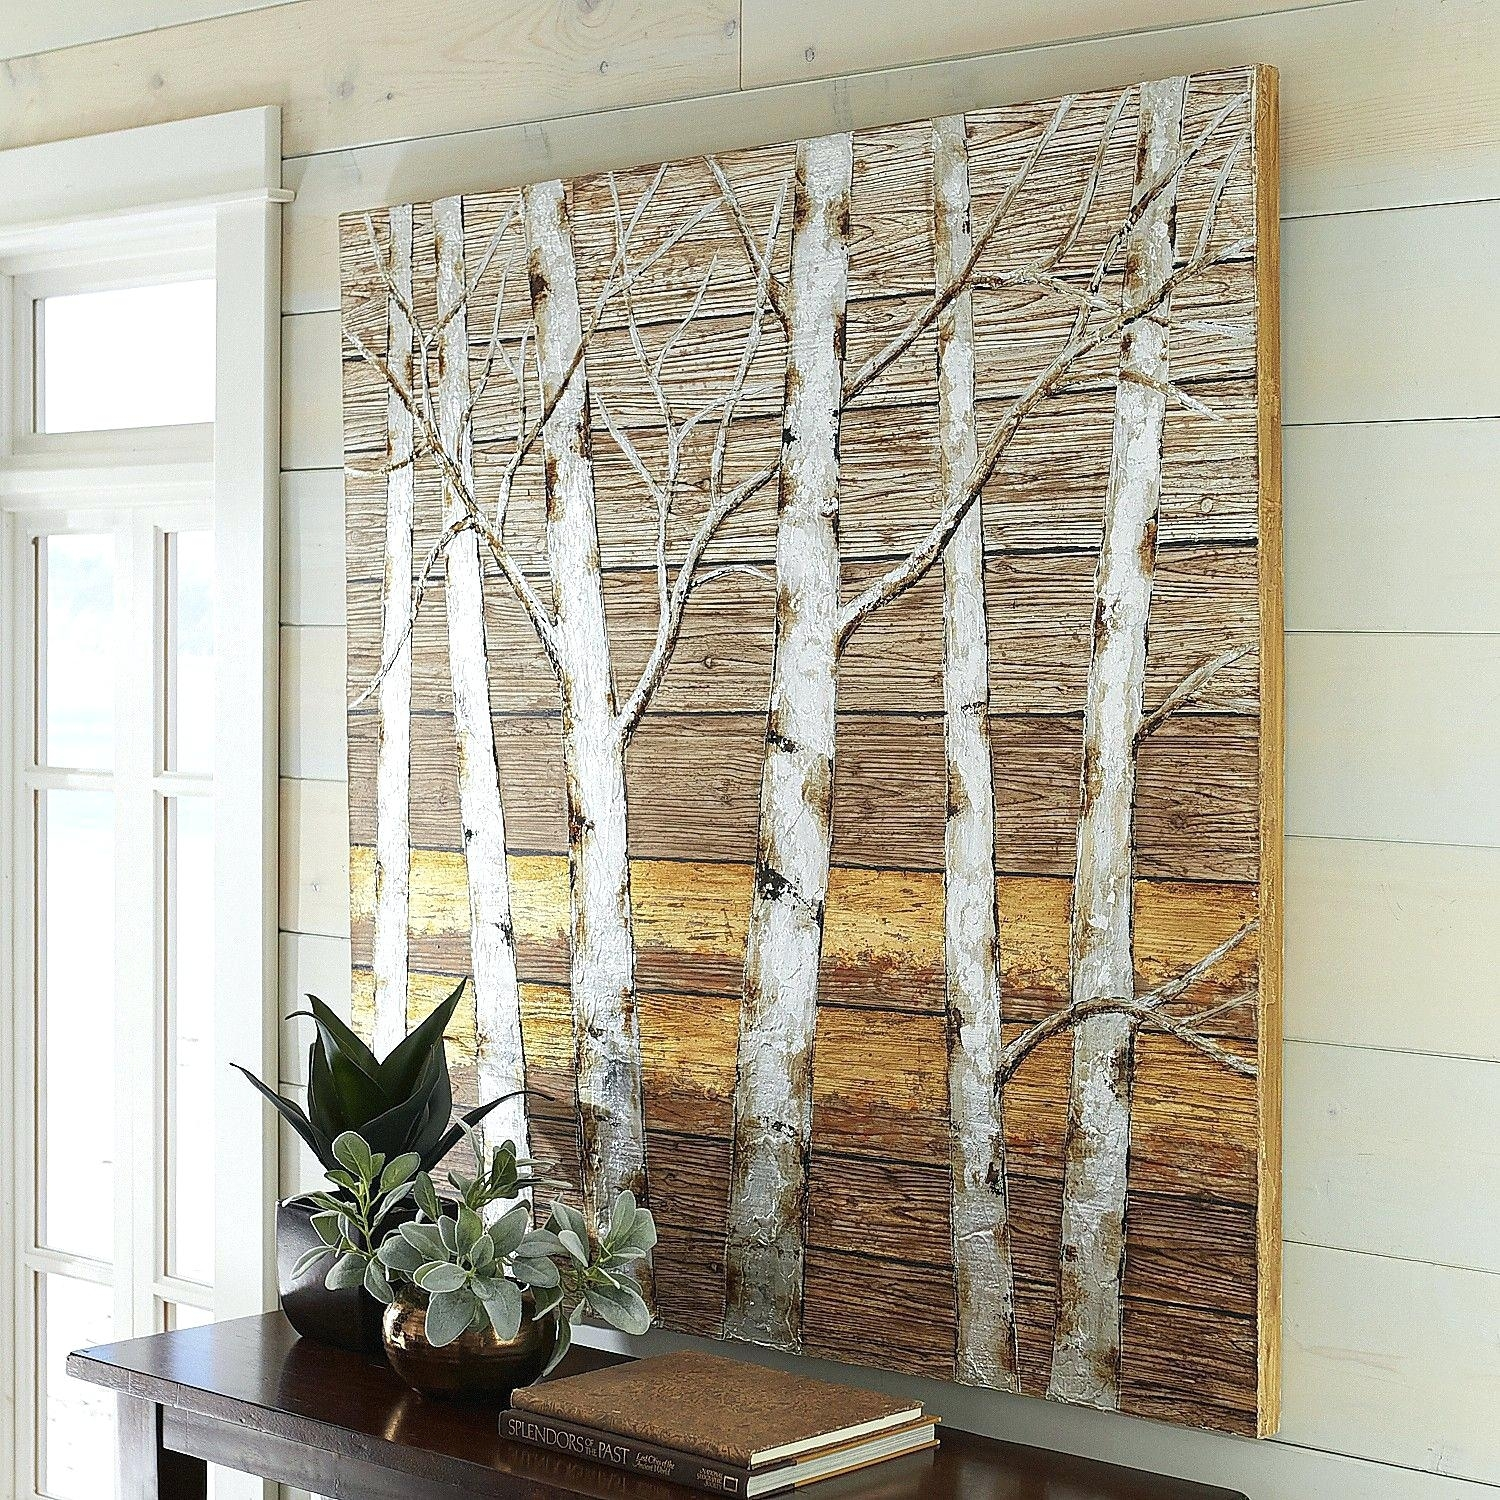 Metallic Birch Trees Wall Art Pier 1 Imports One Decor Pertaining To 2017 Pier 1 Wall Art (Gallery 8 of 20)